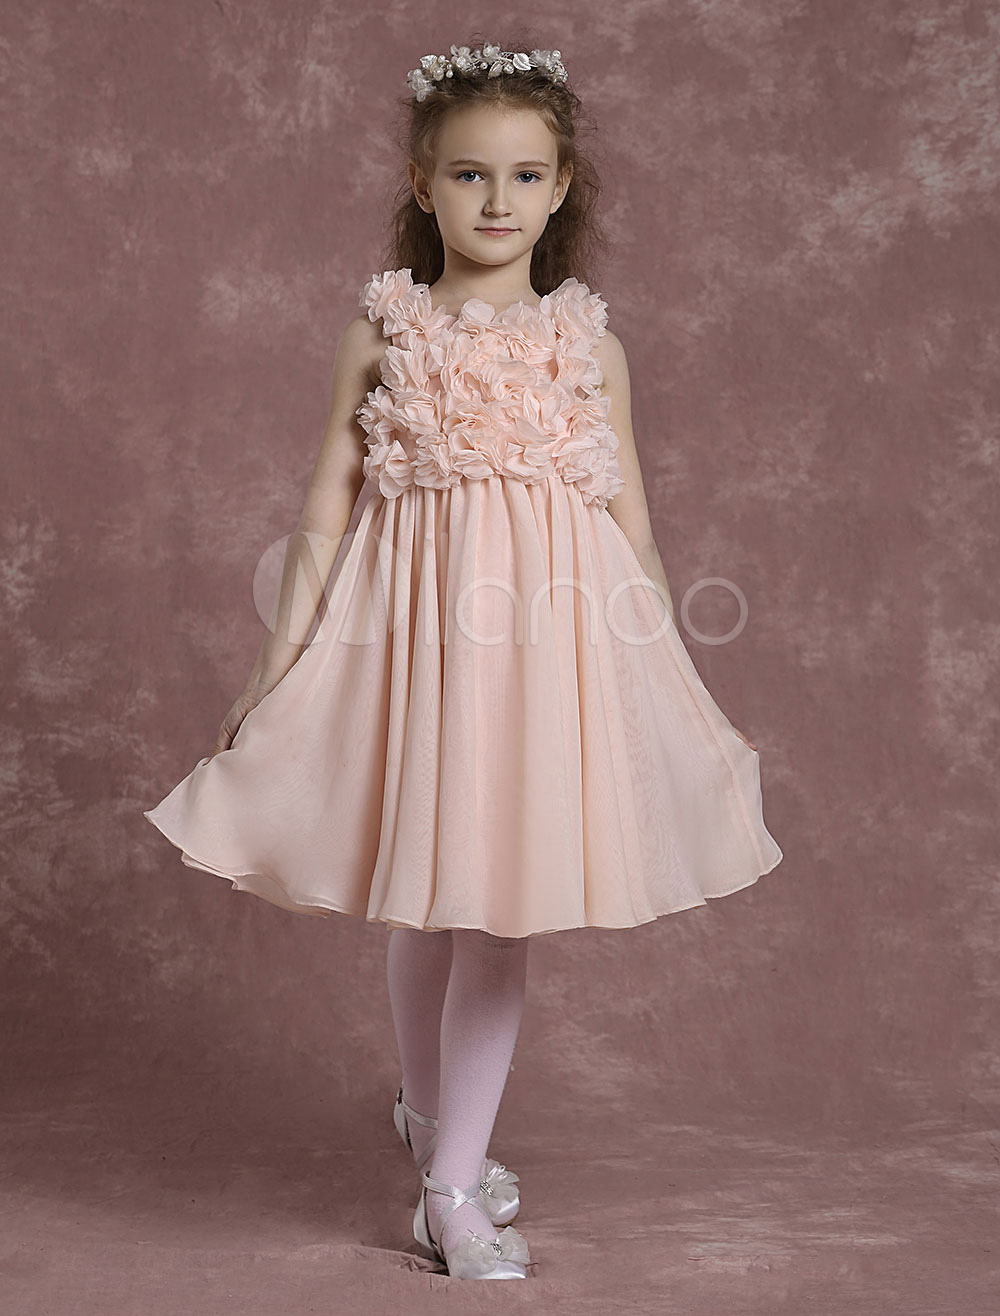 Buy Pink Flower Girl Dresses A Line Chiffon Pageant Dresses Toddler's Pleated Knee Length Dinner Dress With Flowers for $89.09 in Milanoo store